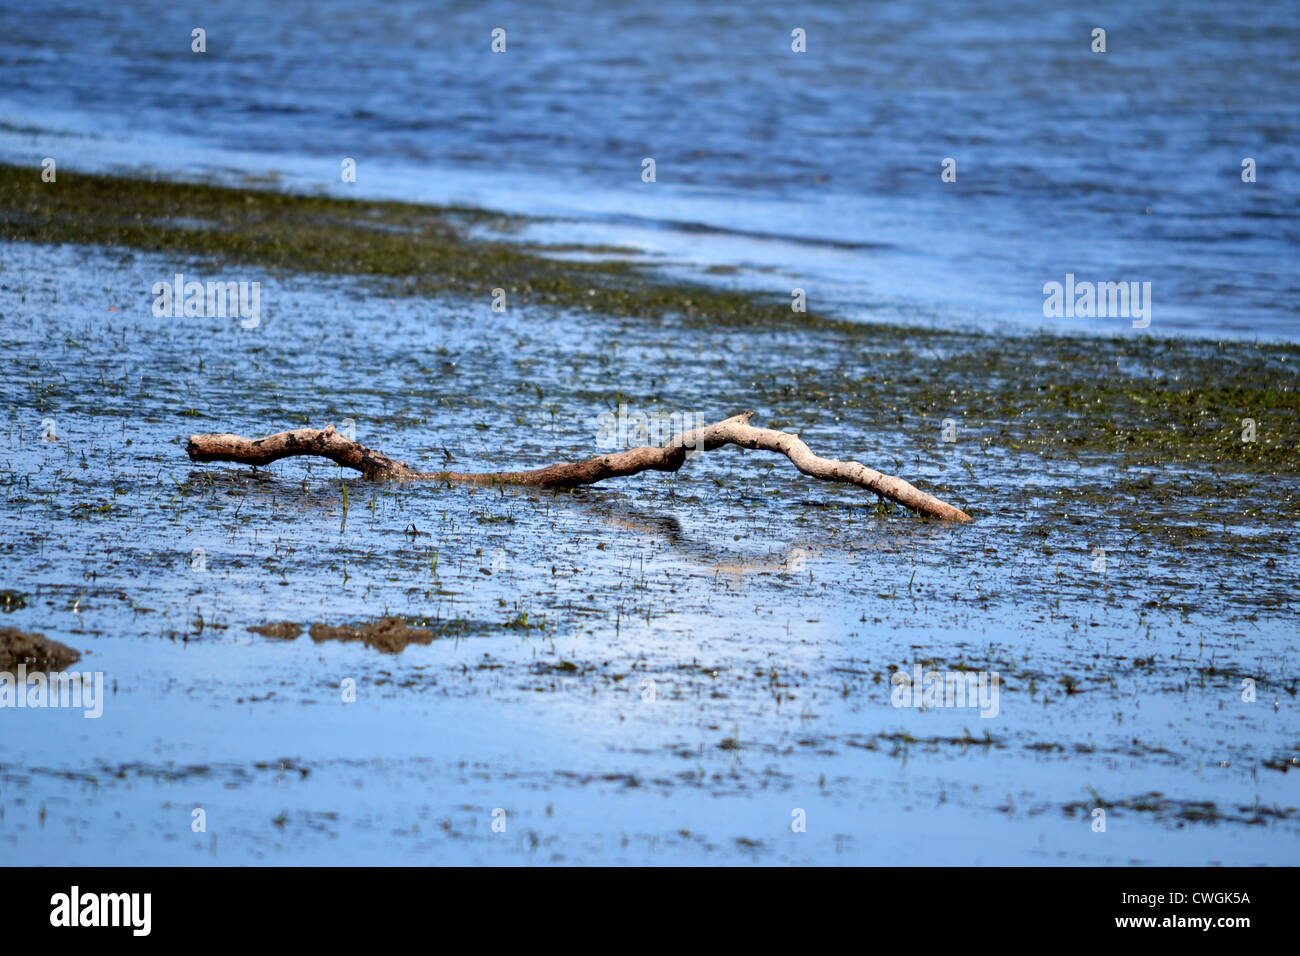 Big tree branch washed up onto weed bank at low tide - Stock Image